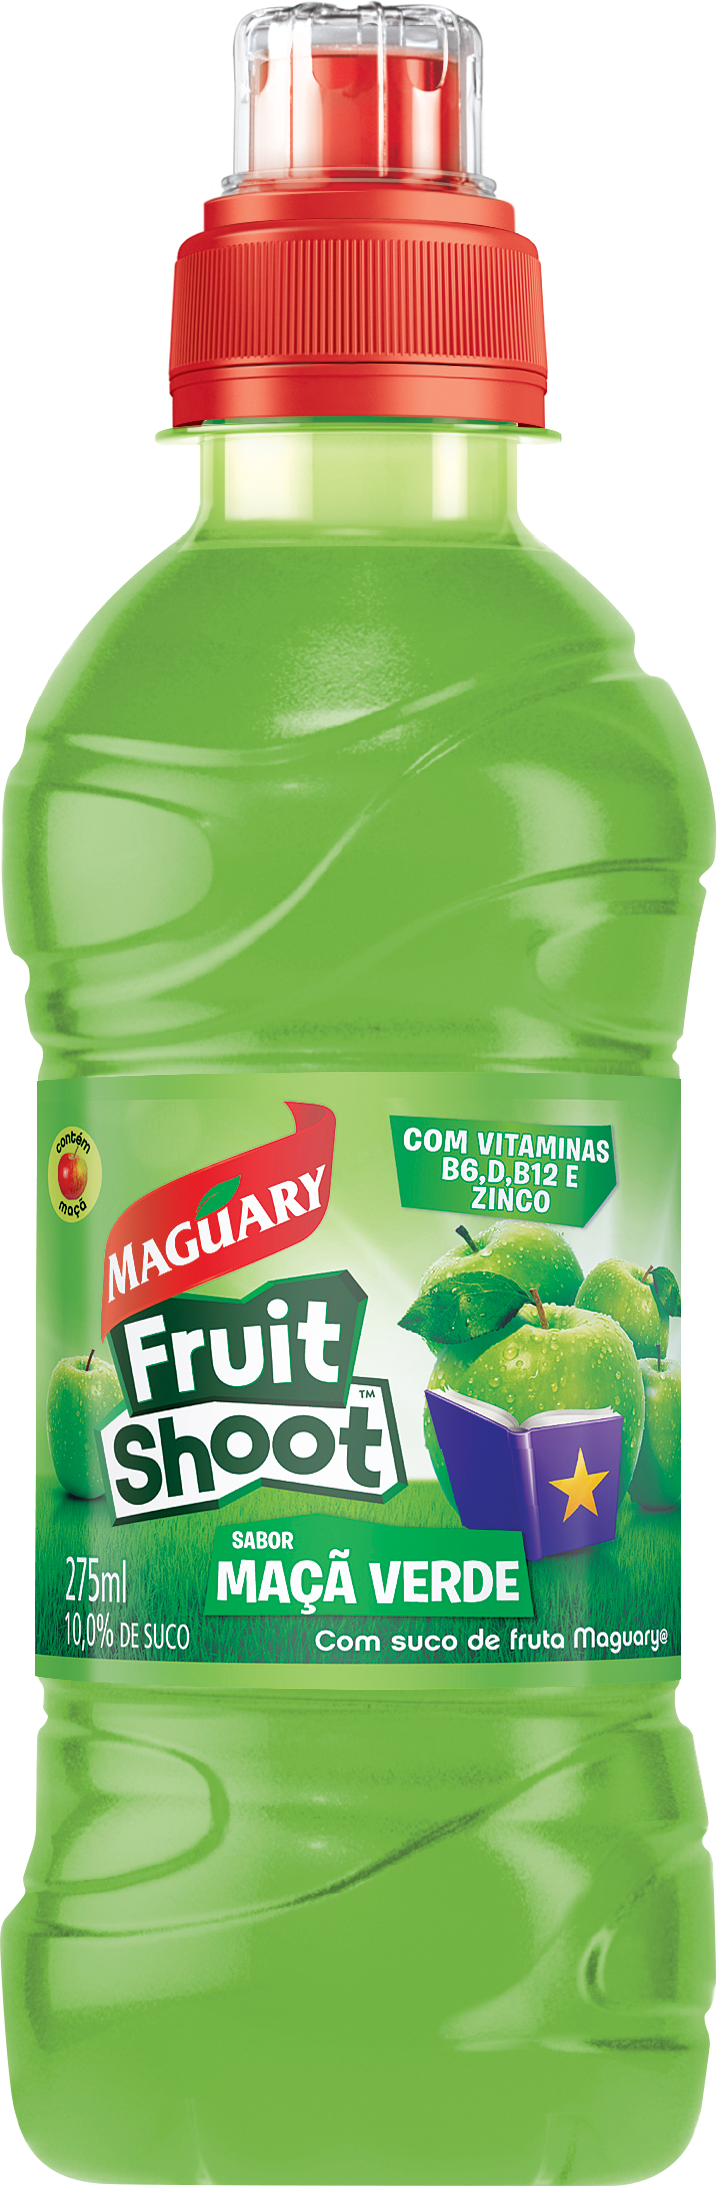 Uva Fruitshoot